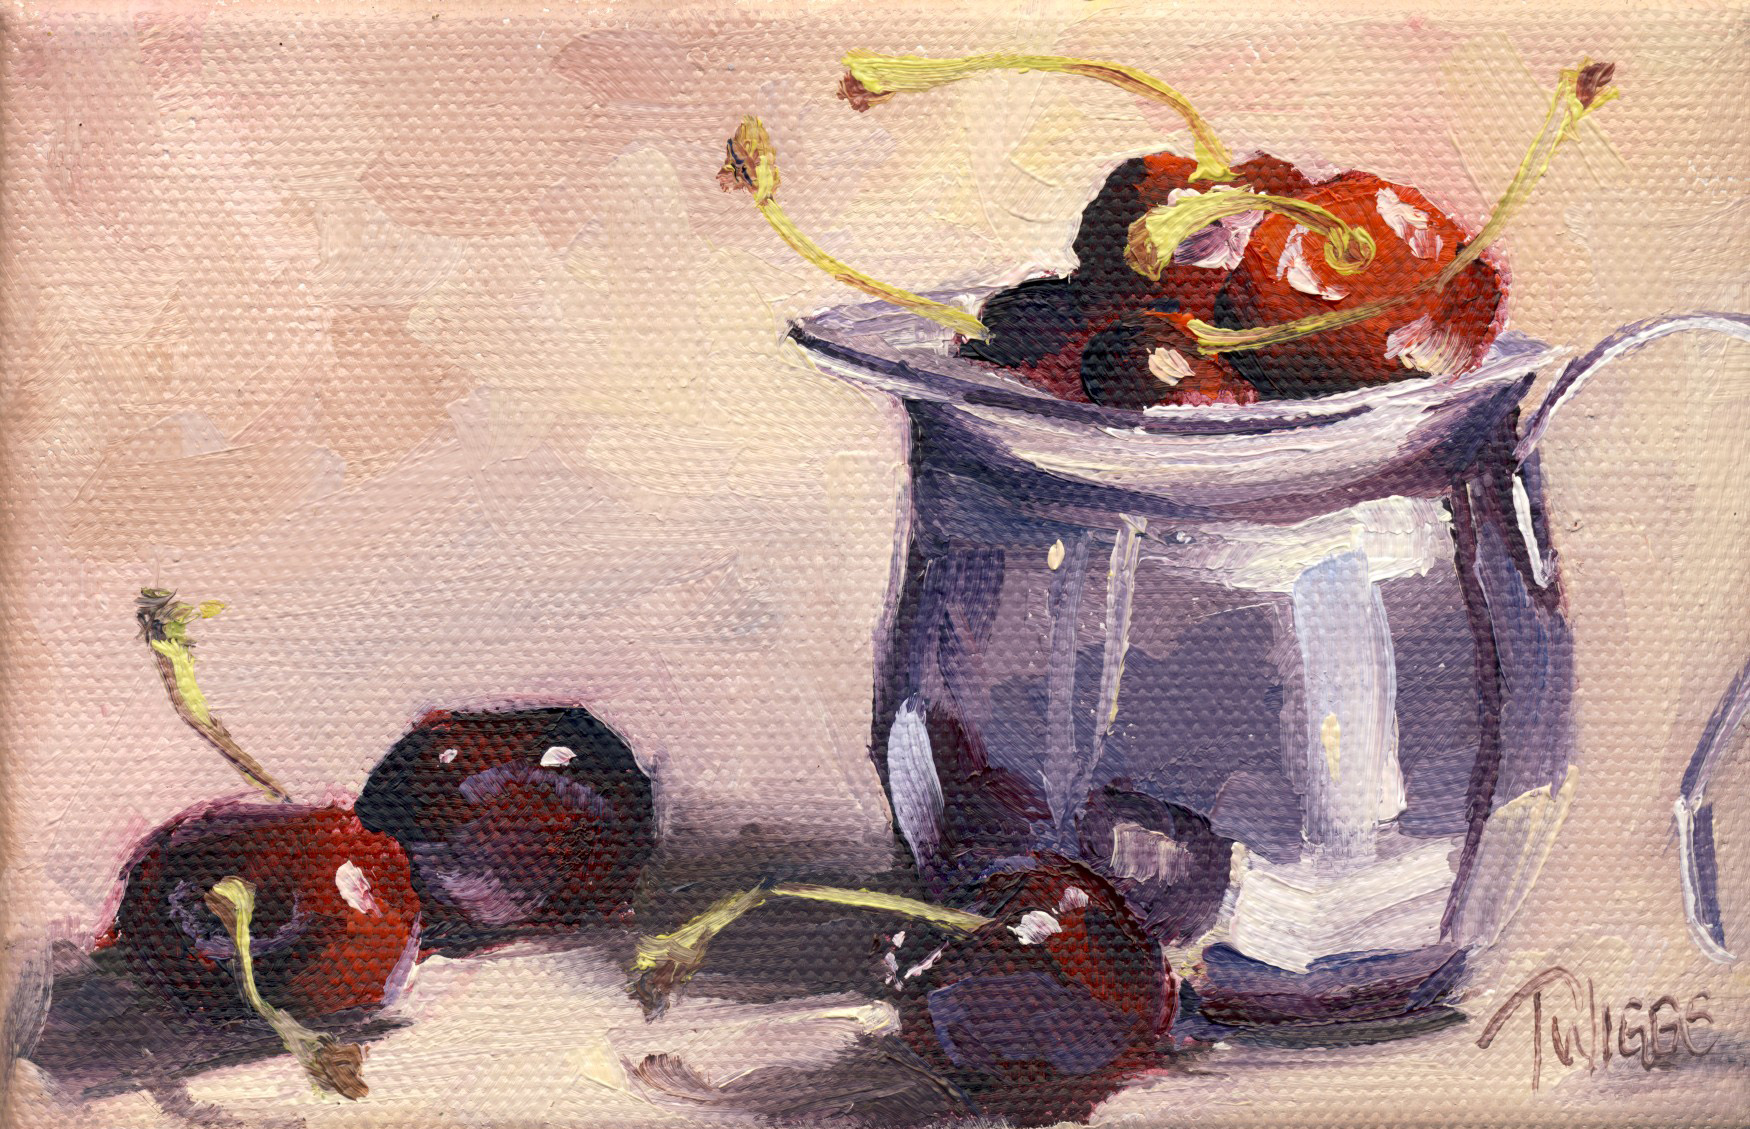 """Cherries 6"" original fine art by Lori Twiggs"